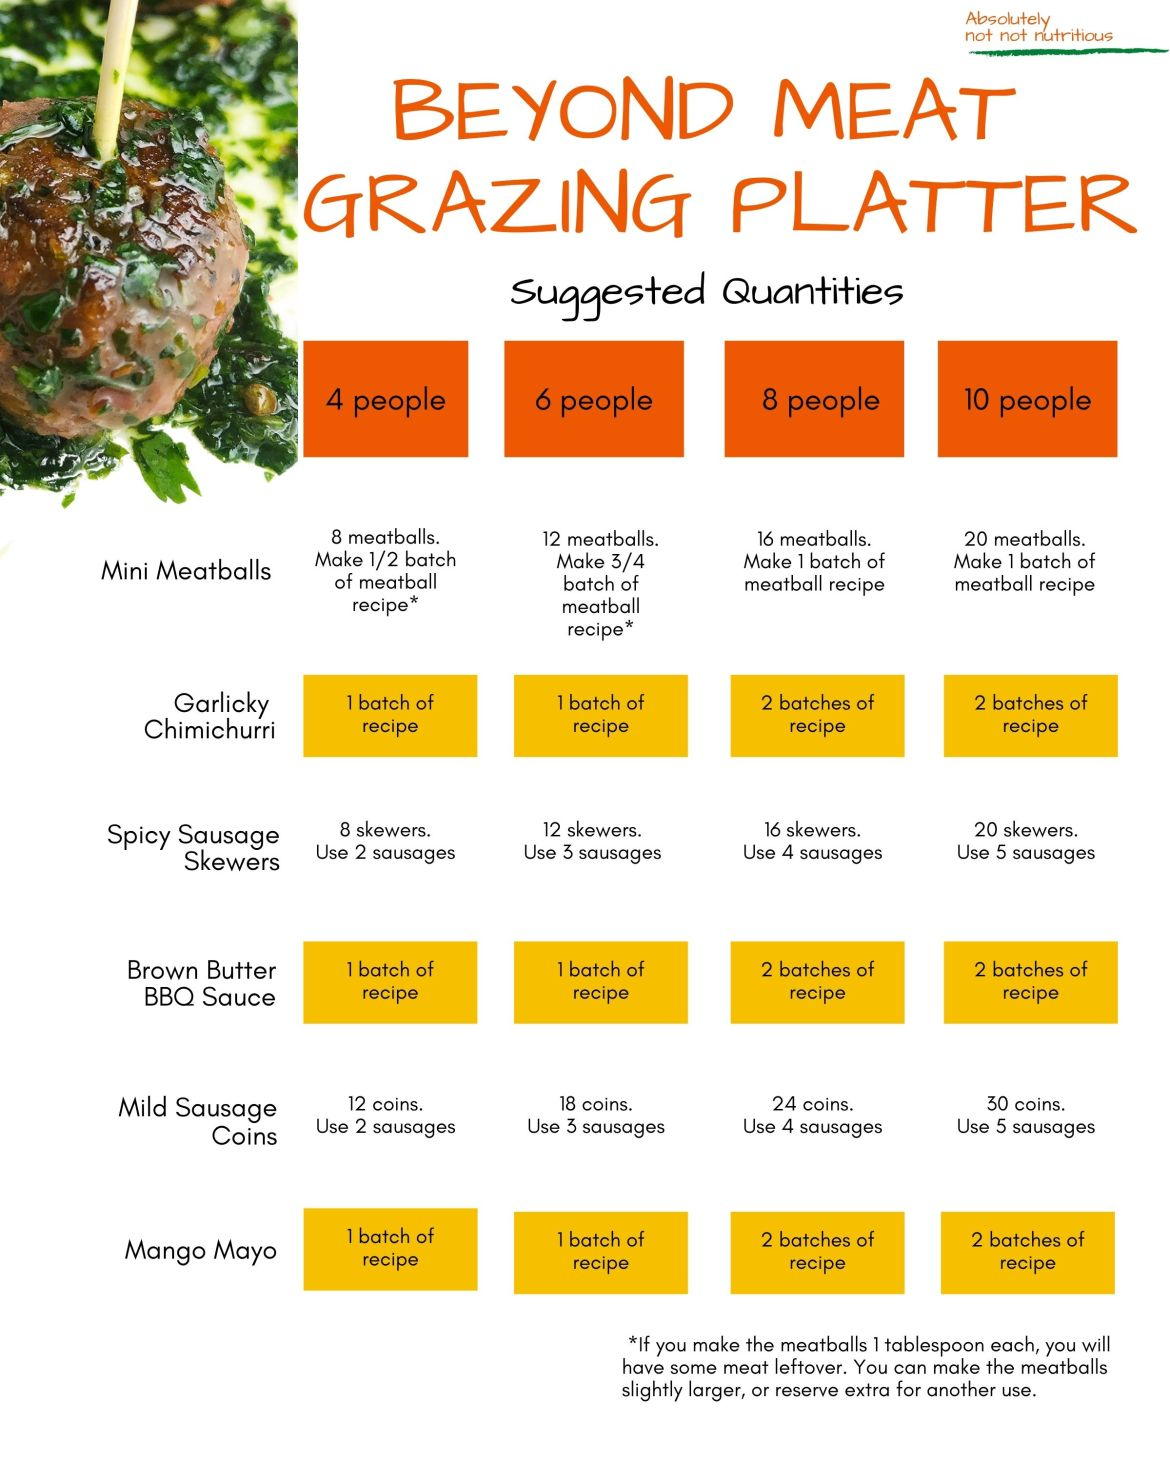 Infographic titled Beyond Meat Grazing Platter, Suggested Quantities. For 4 people, make 8 meatballs, using 1/2 batch of recipe, 1 batch of the garlicky chimichurri, 8 spicy sausage skewers using 2 sausages, 1 batch of the brown butter barbecue recipe, 12 coins of mild sausage using 2 sausages, and 1 batch of the mango recipe. For 6 people, make 12 meatballs, using 3/4 batch of recipe, 1 batch of the garlicky chimichurri, 12 spicy sausage skewers using 3 sausages, 1 batch of the brown butter barbecue recipe, 18 coins of mild sausage using 3 sausages, and 1 batch of the mango mayo recipe For 8 people, make 16 meatballs, using 1 batch of recipe, 2 batches of the garlicky chimichurri, 16 spicy sausage skewers using 4 sausages, 2 batch of the brown butter barbecue recipe, 24 coins of mild sausage using 4 sausages, and 2 batches of the mango mayo recipe. For 10 people, make 1 batch of the meatball recipe, 2 batches of garlicky chimichurri, 20 spicy sausage skewers using 5 sausages, 2 batches of brown butter bbq sauce recipe, 30 sausage coins using 5 sausages, and 2 batches of the mango mayo recipe.